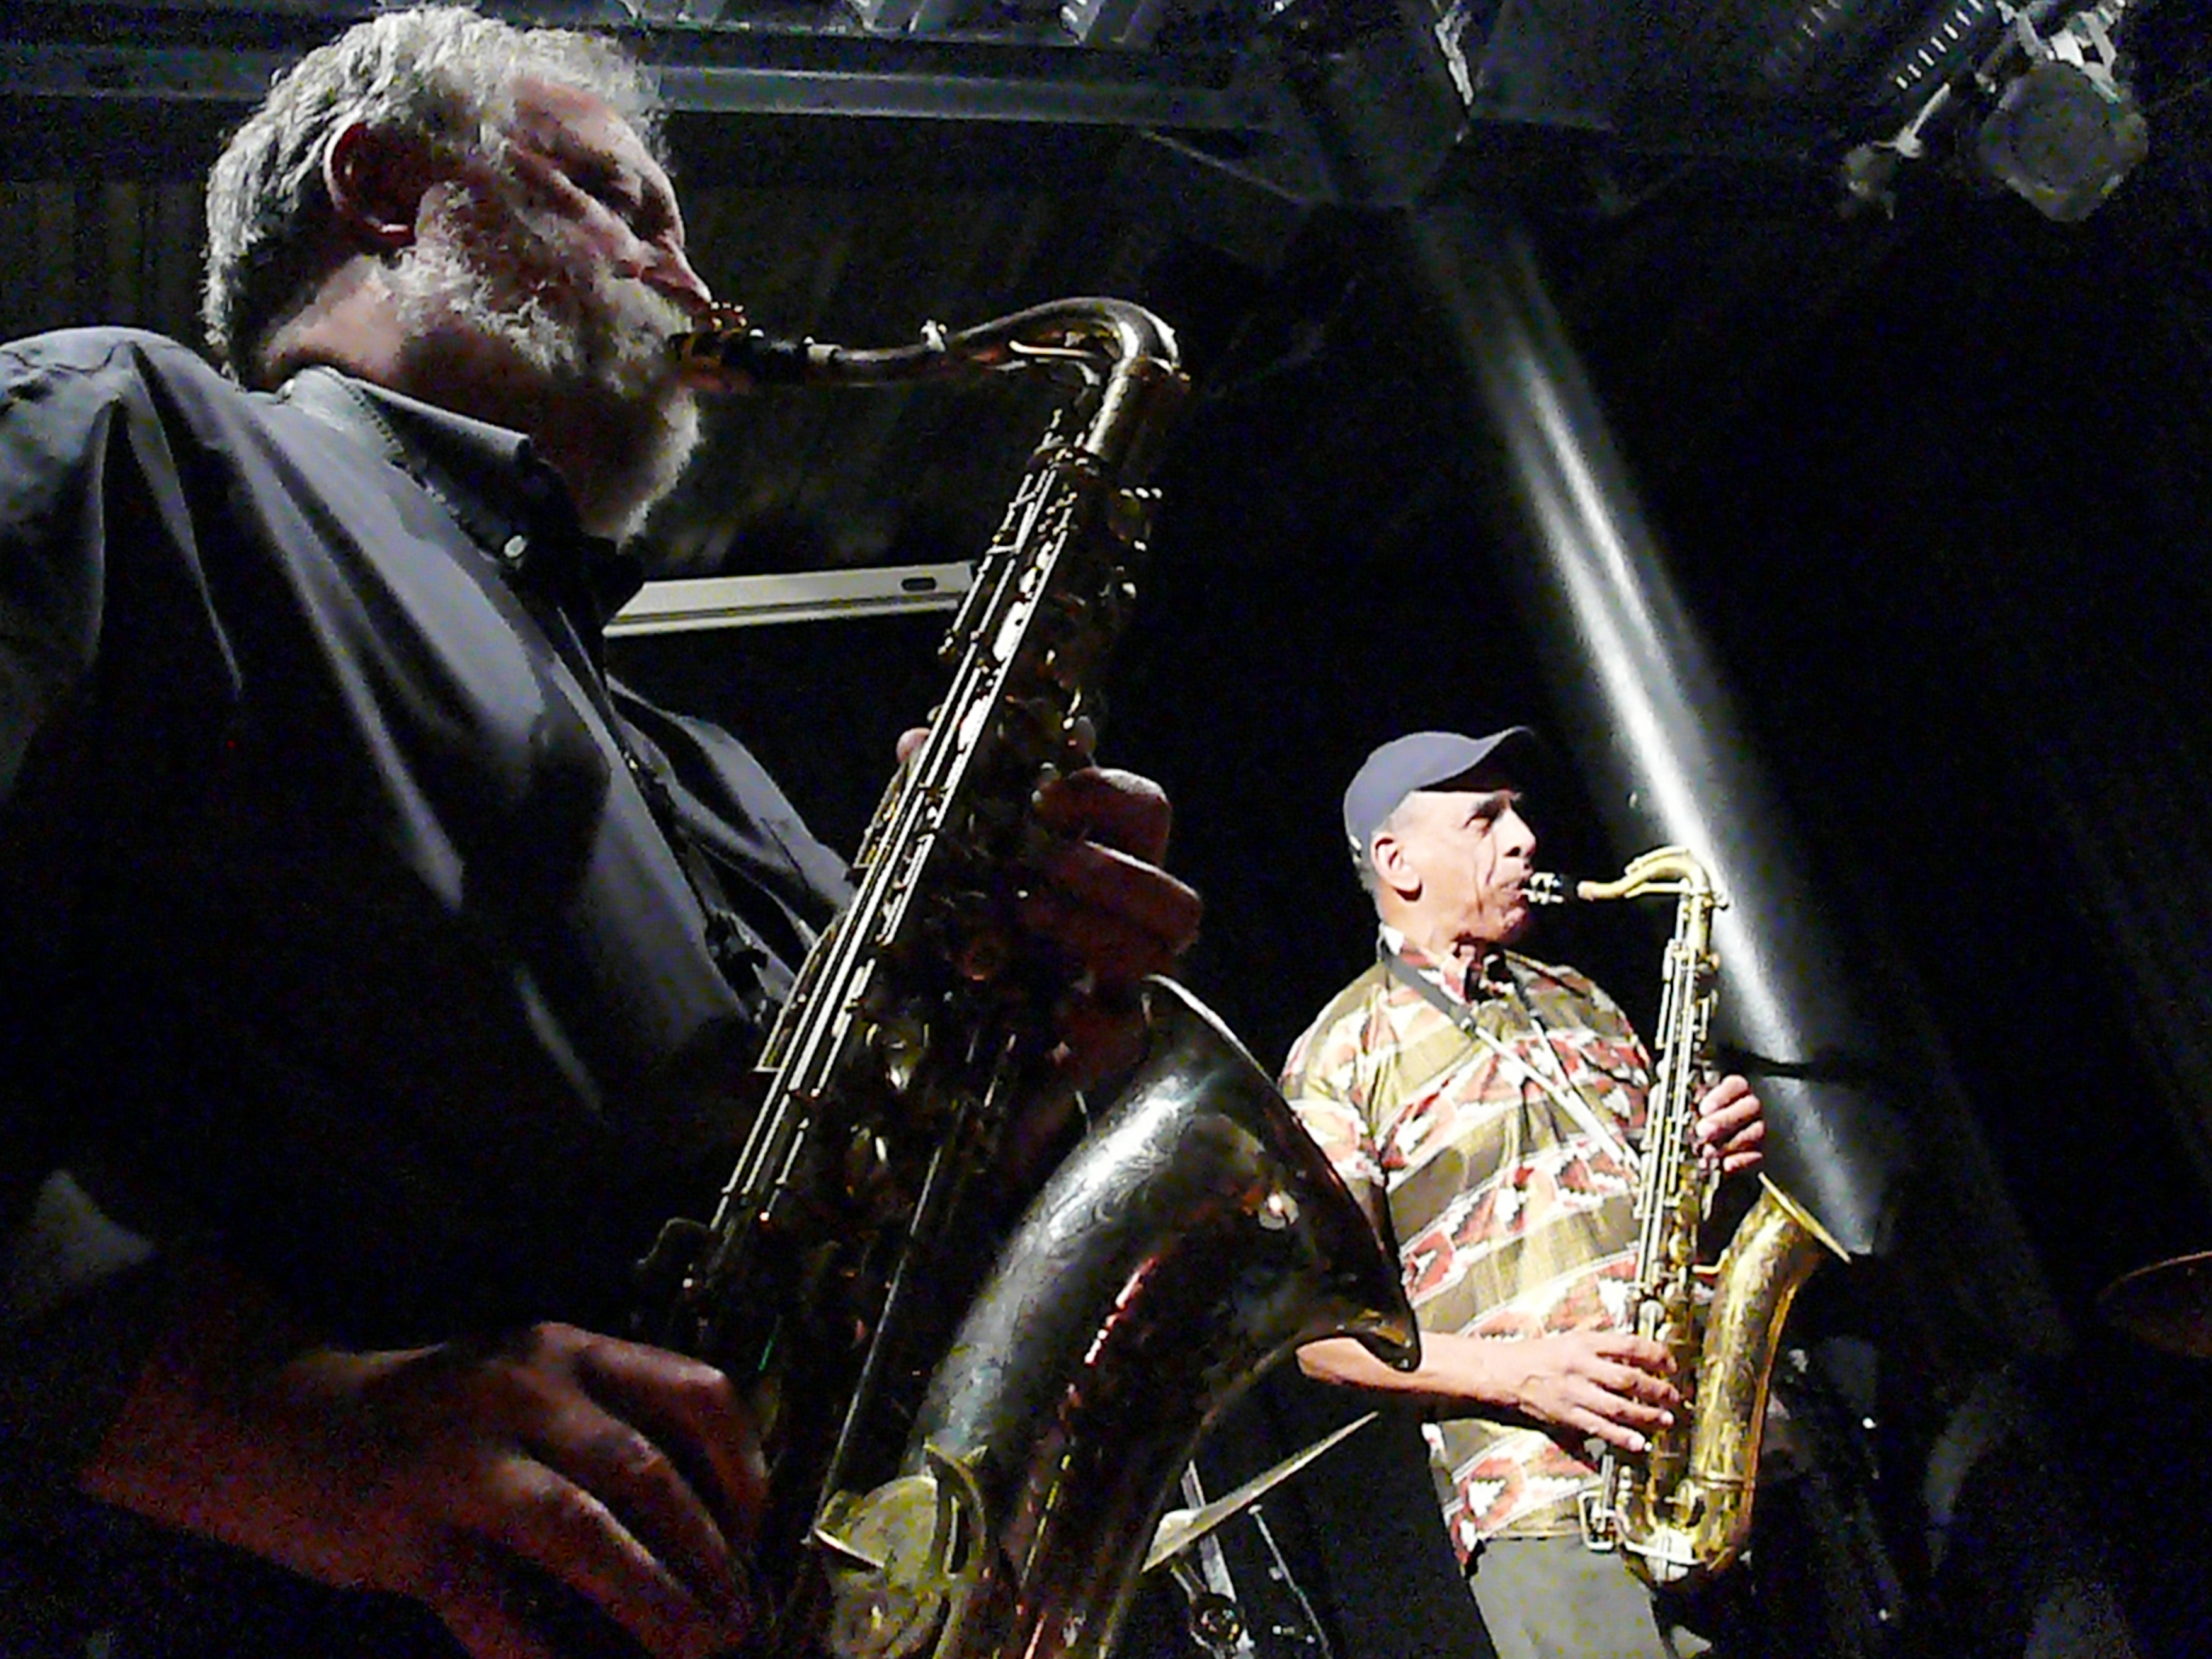 Evan Parker and John Tchicai at the Vortex, London in October 2011